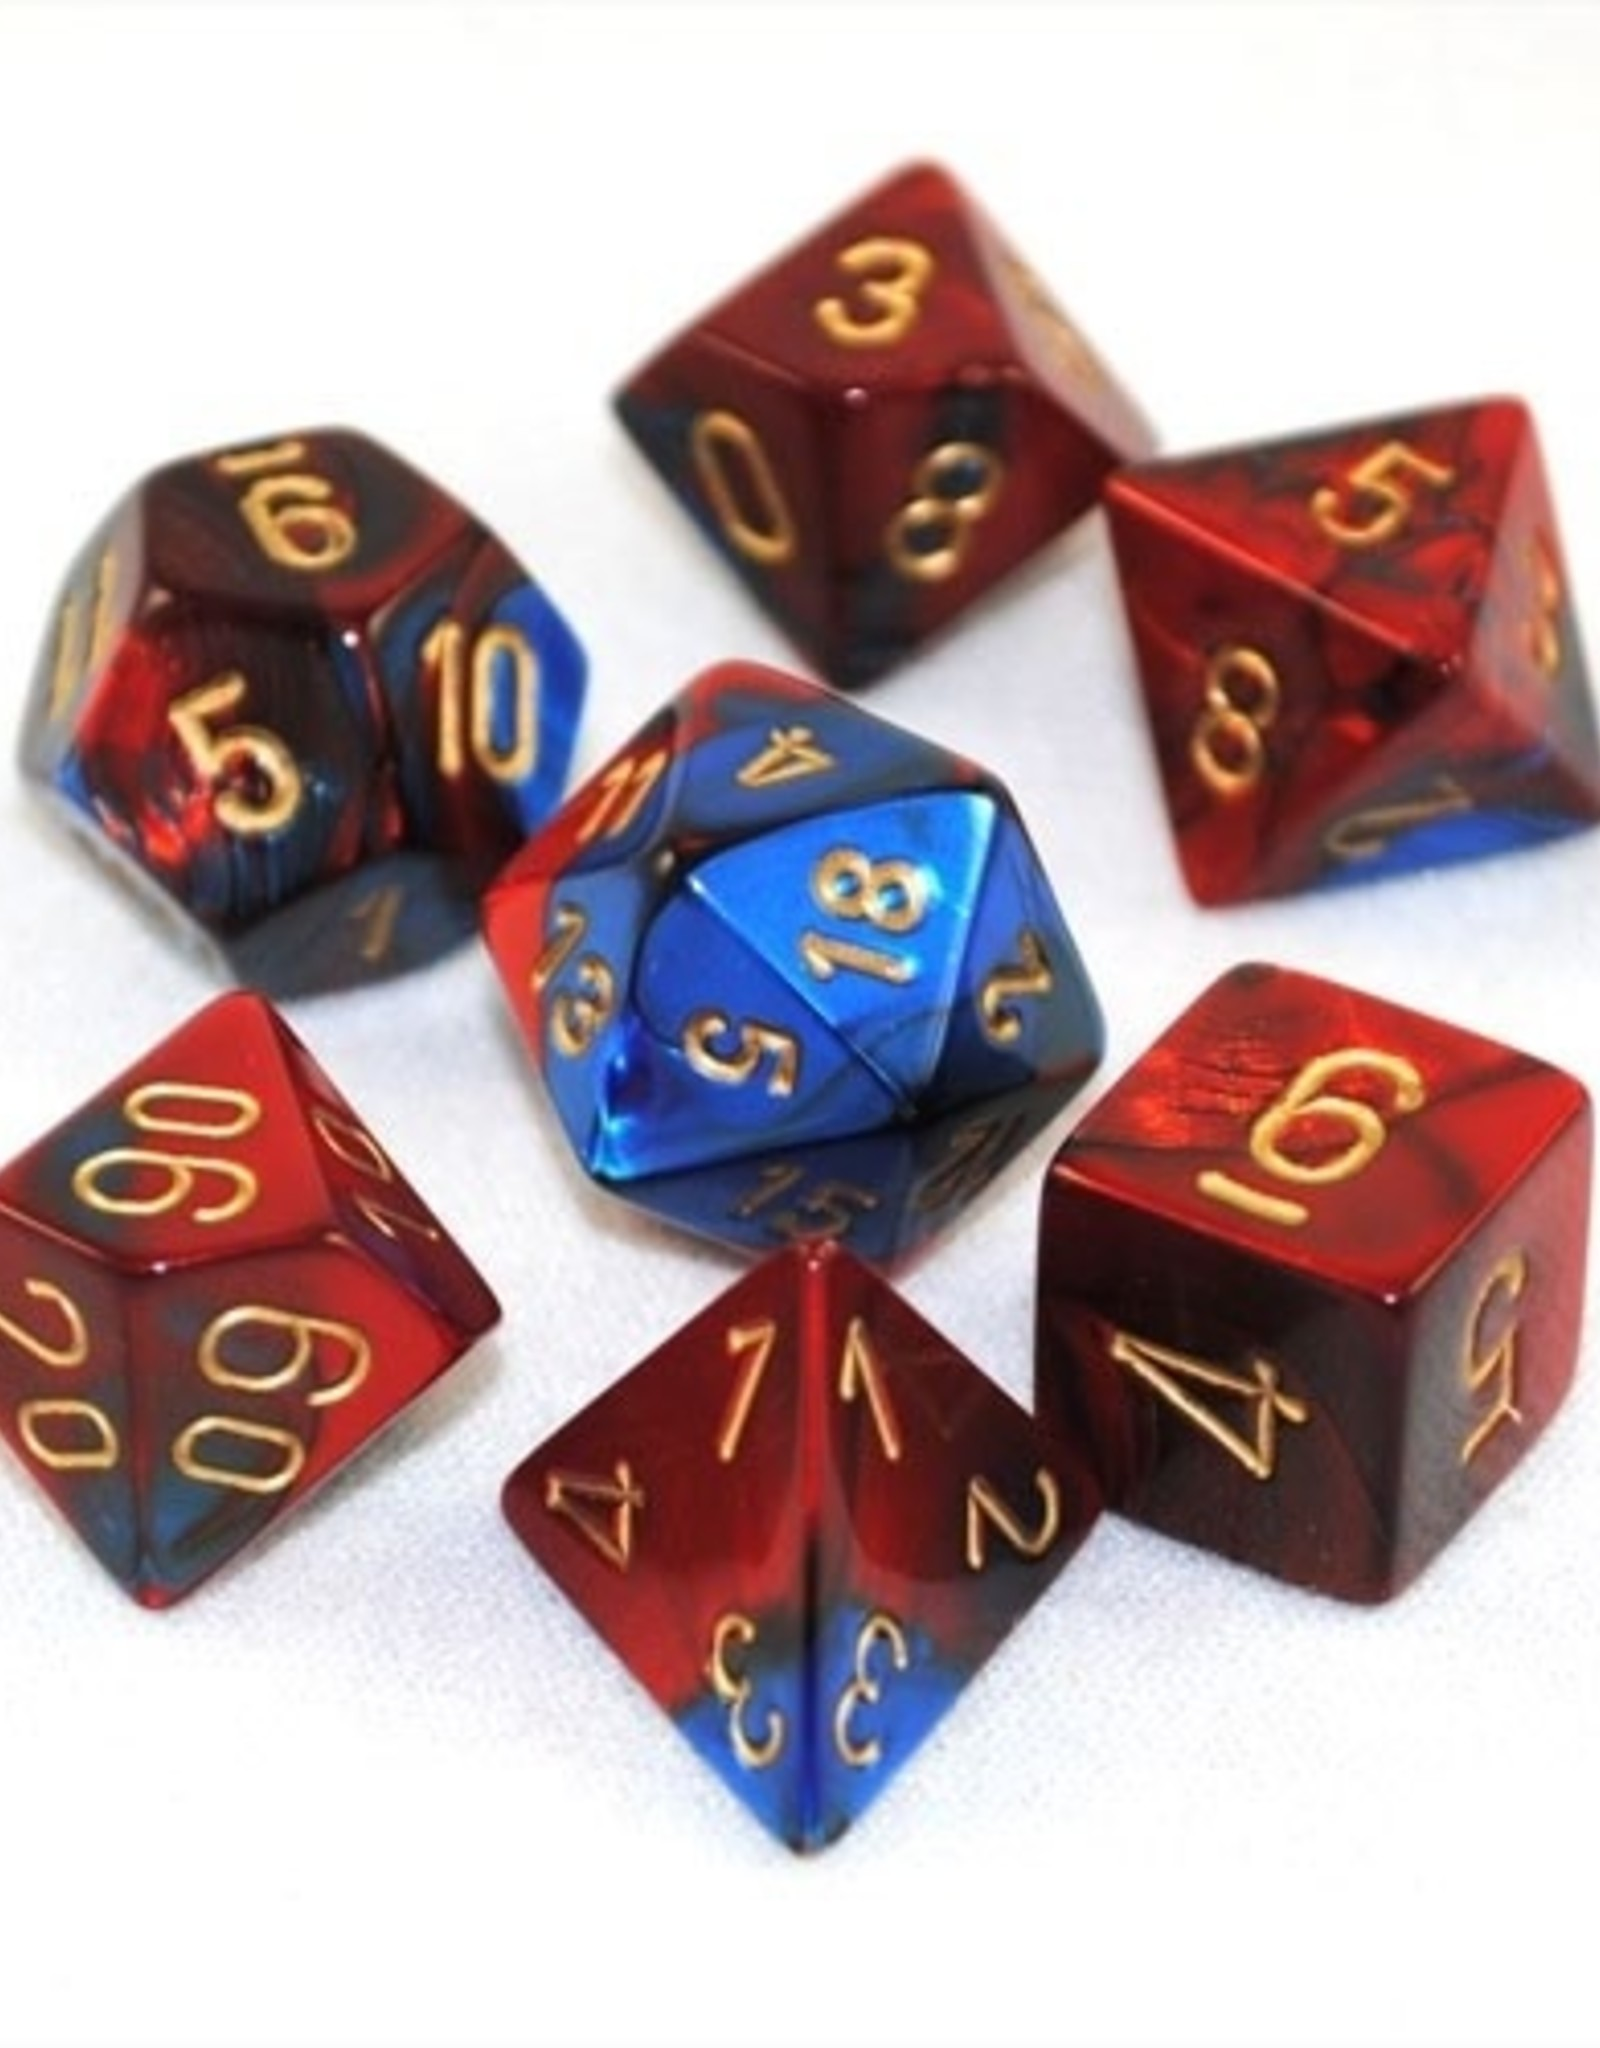 Chessex Blue-Red w/gold Gemini Poly 7 dice set